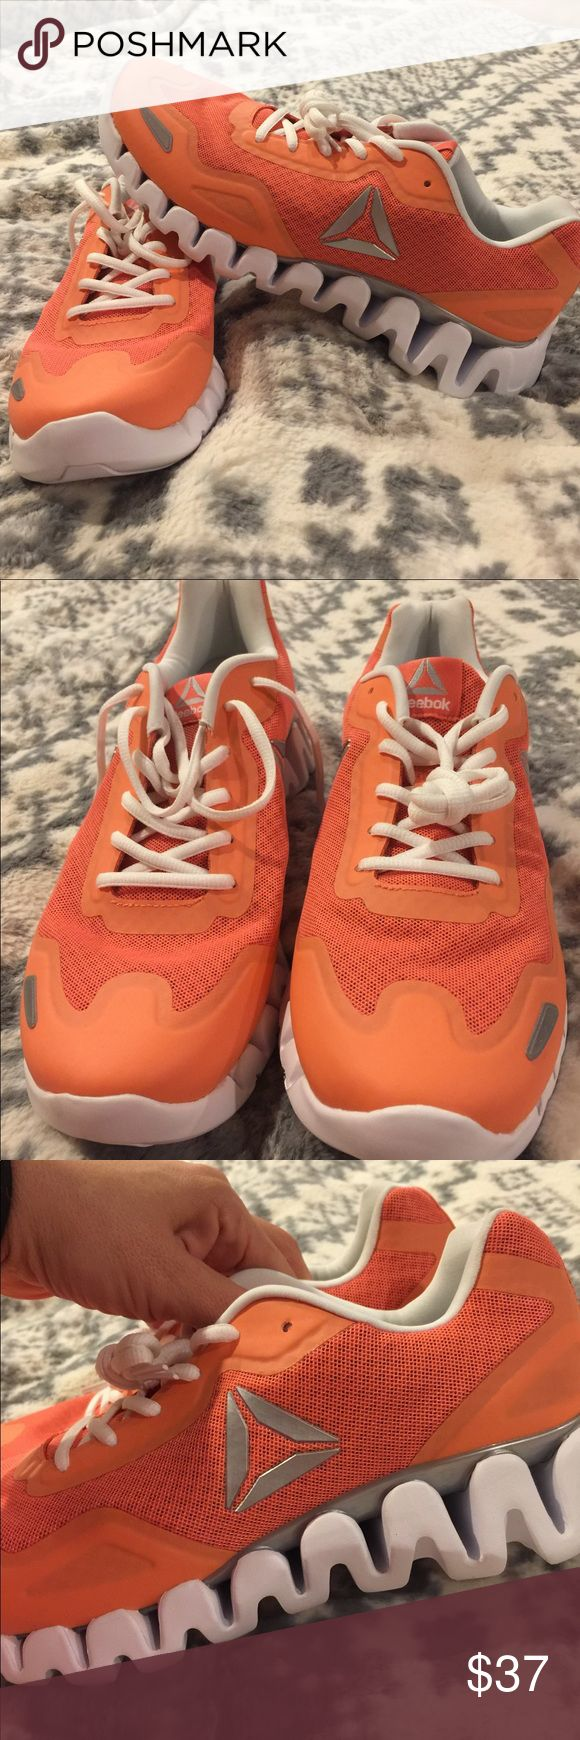 NWT Reebok Zig Evolution Running Shoe Never wore- NWT longer hAve box but pics show brand new condition- zigtech Running Shoe- Reebok Shoes Athletic Shoes